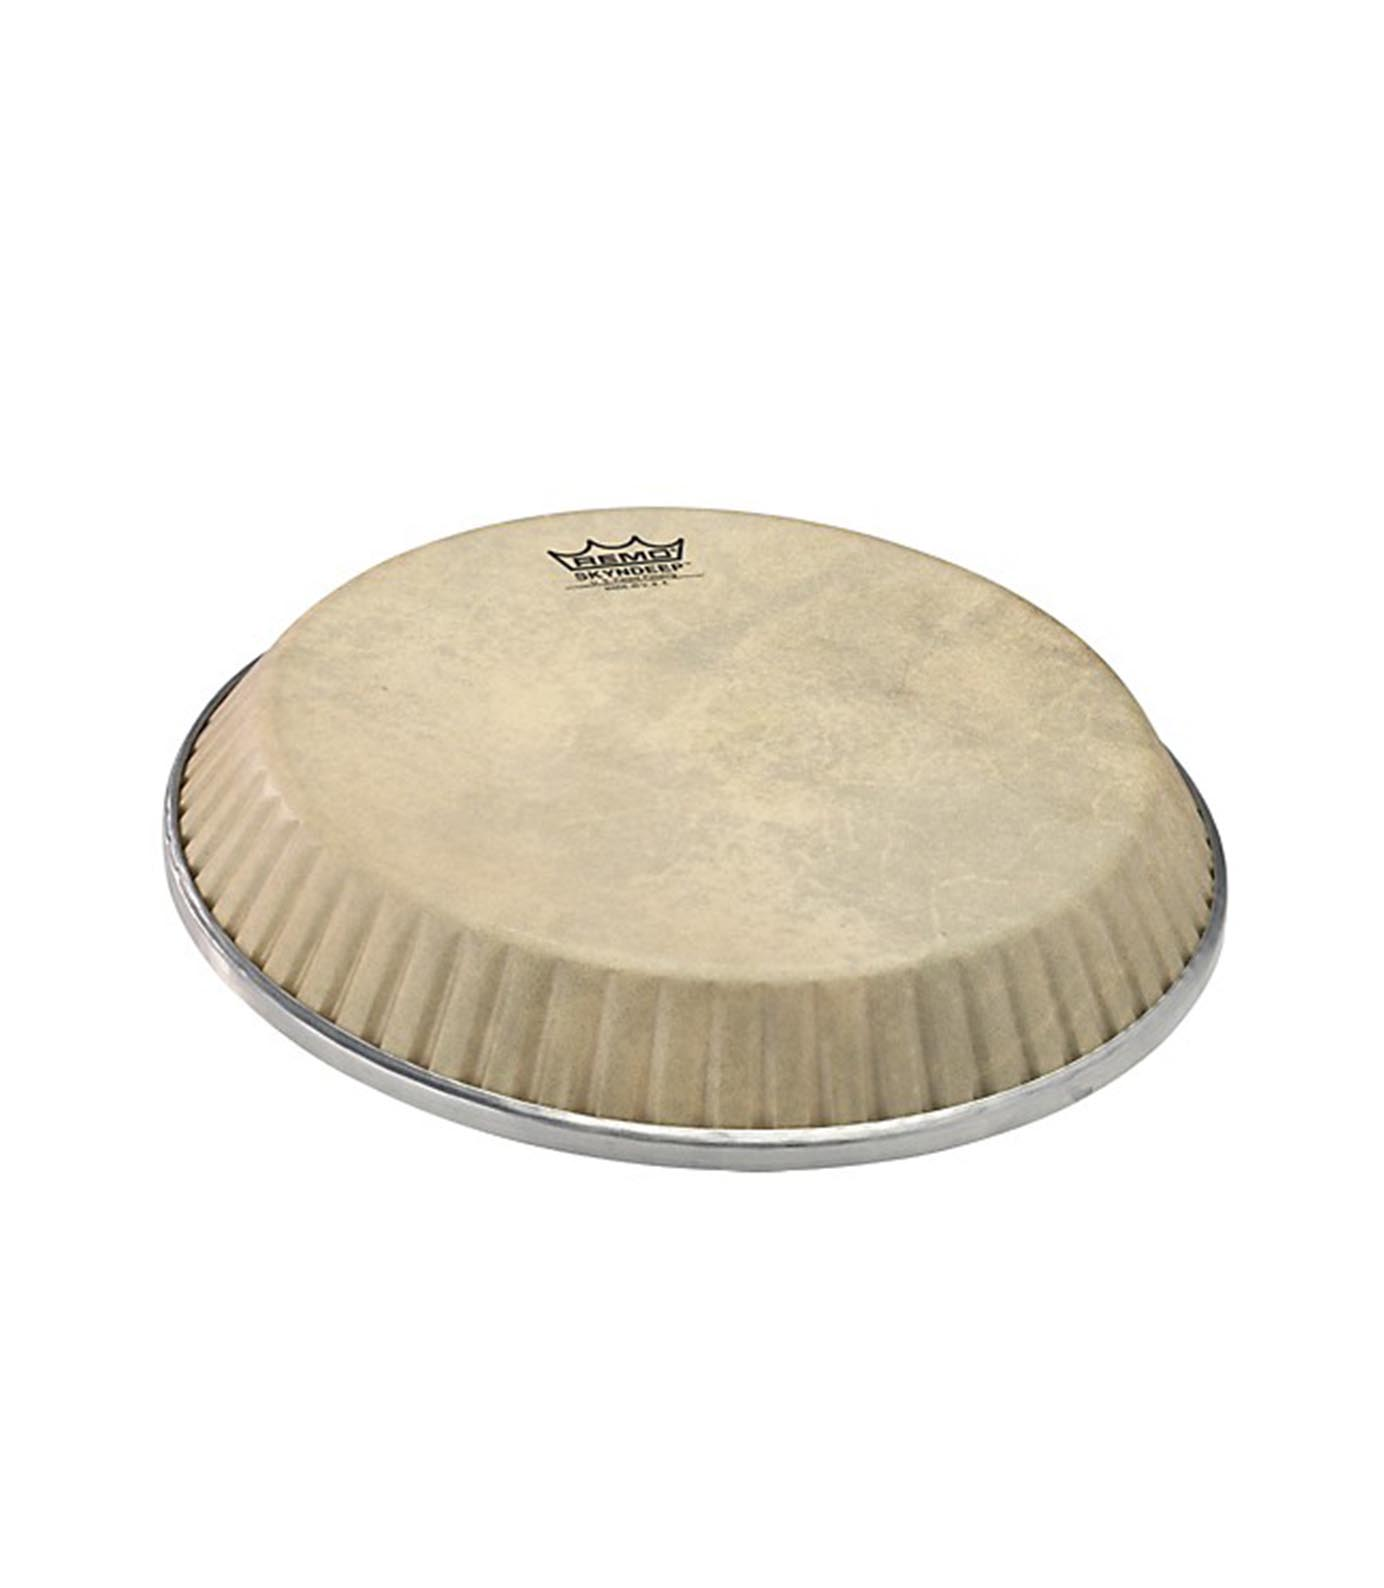 Buy Remo - Conga Drumhead Symmetry 9 75 D4 SKYNDEEP Ca